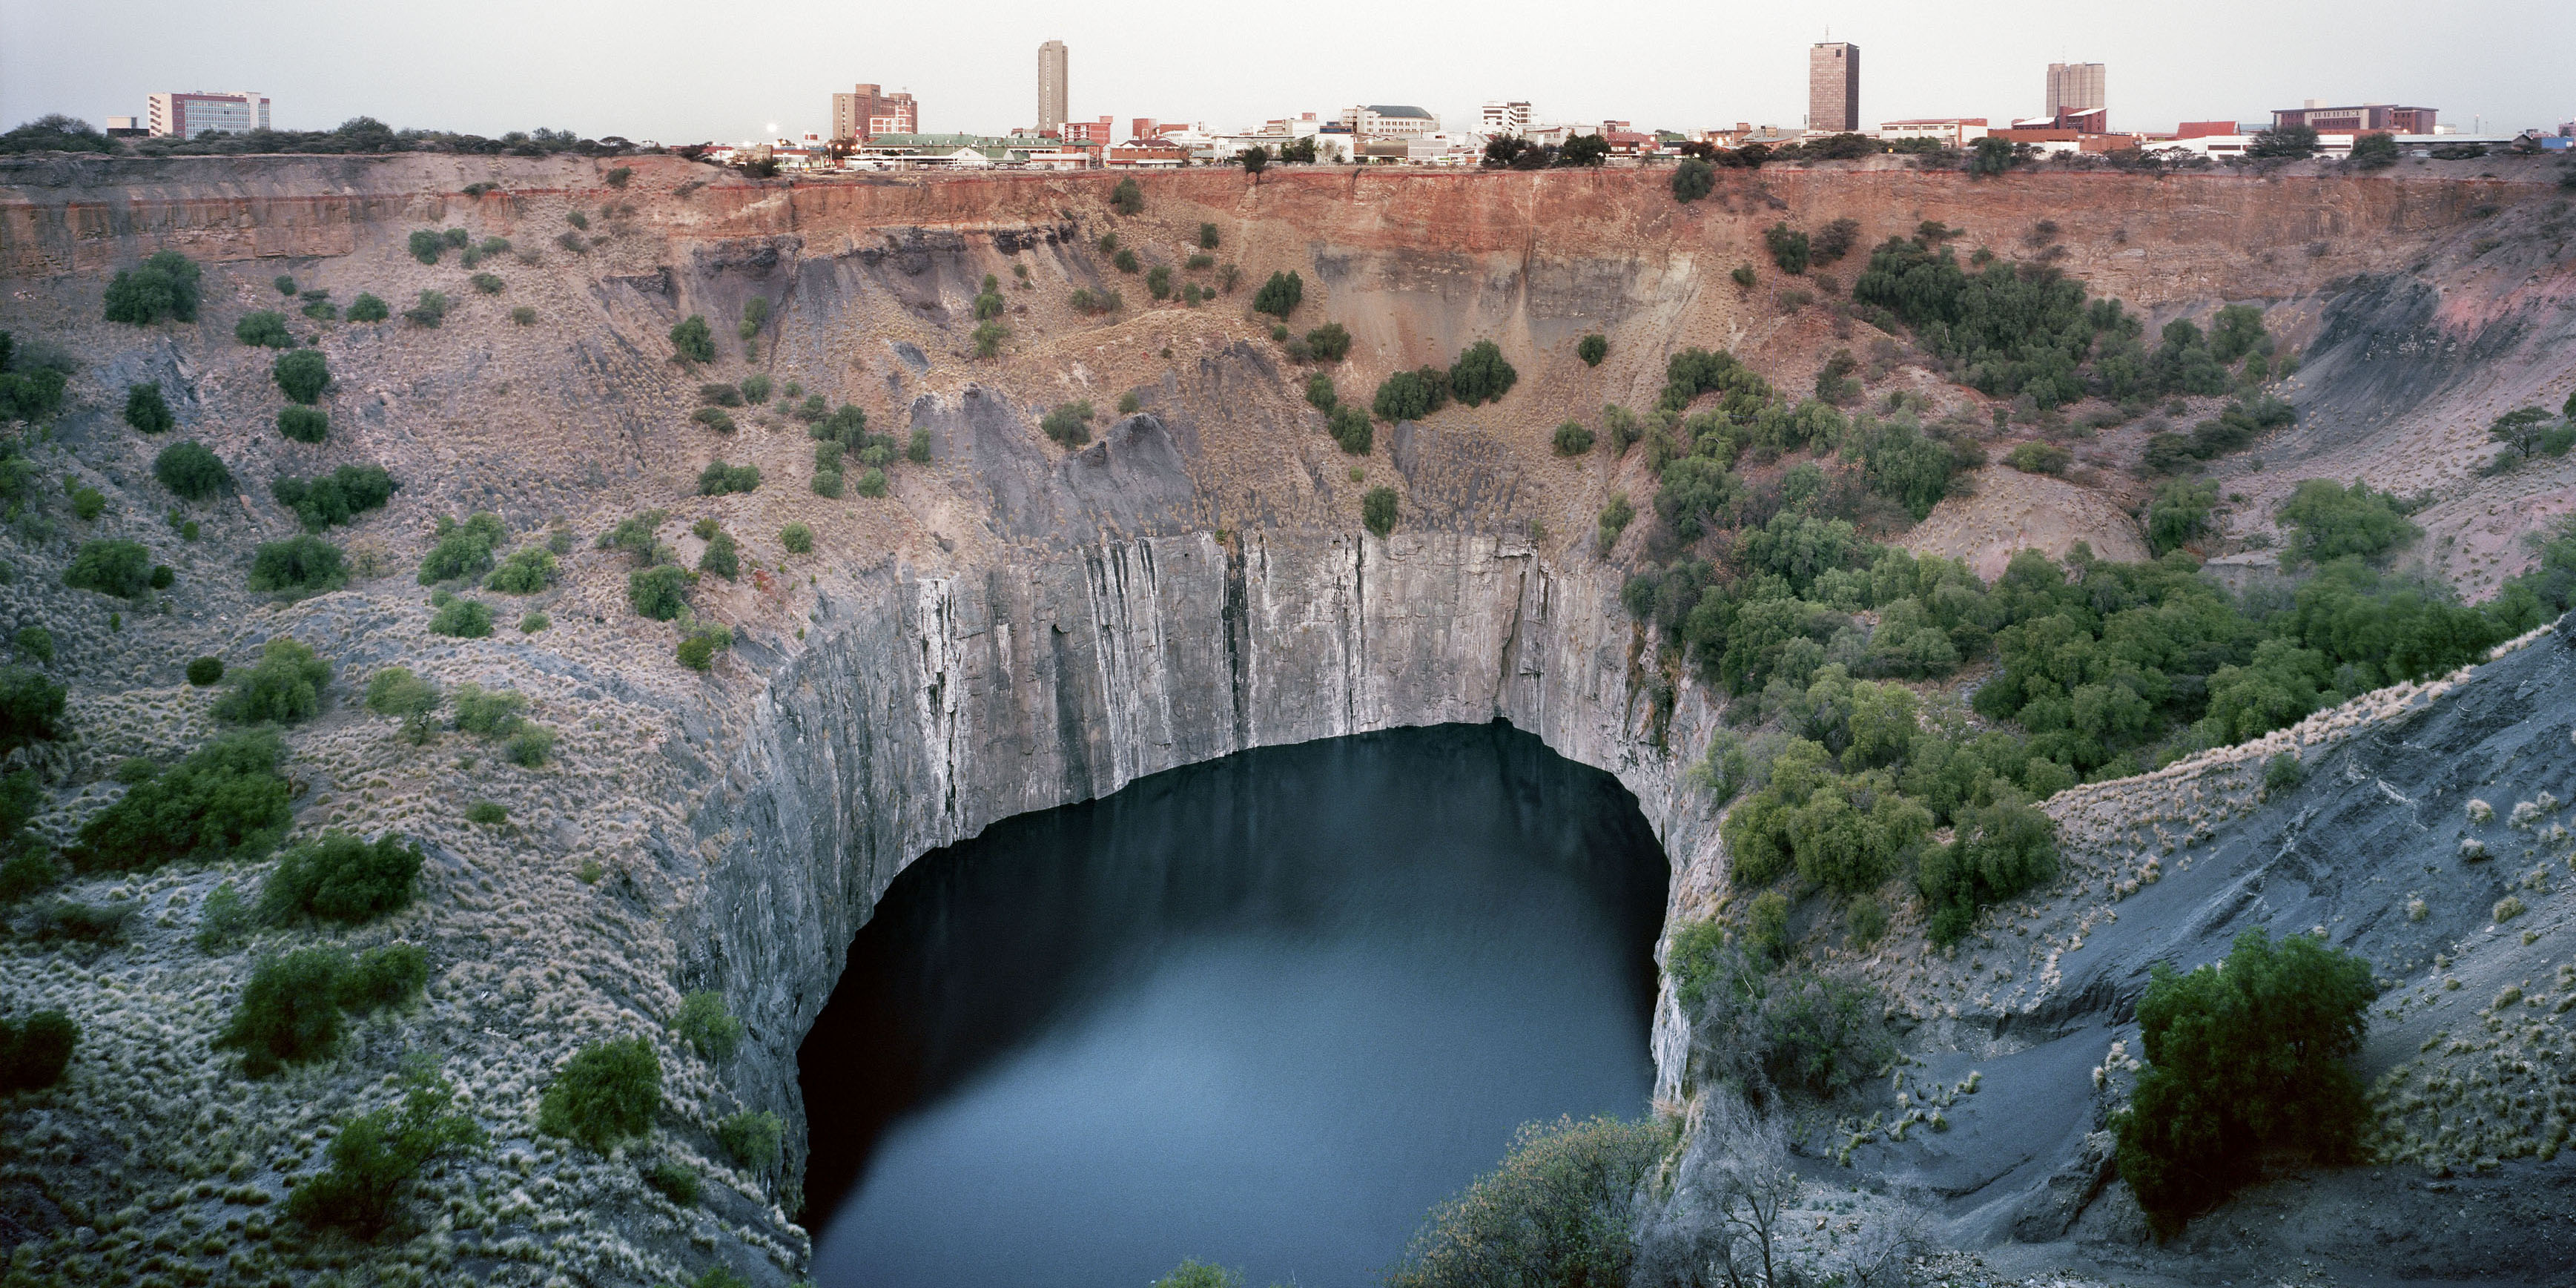 All About Africa; Kimberly, South Africa